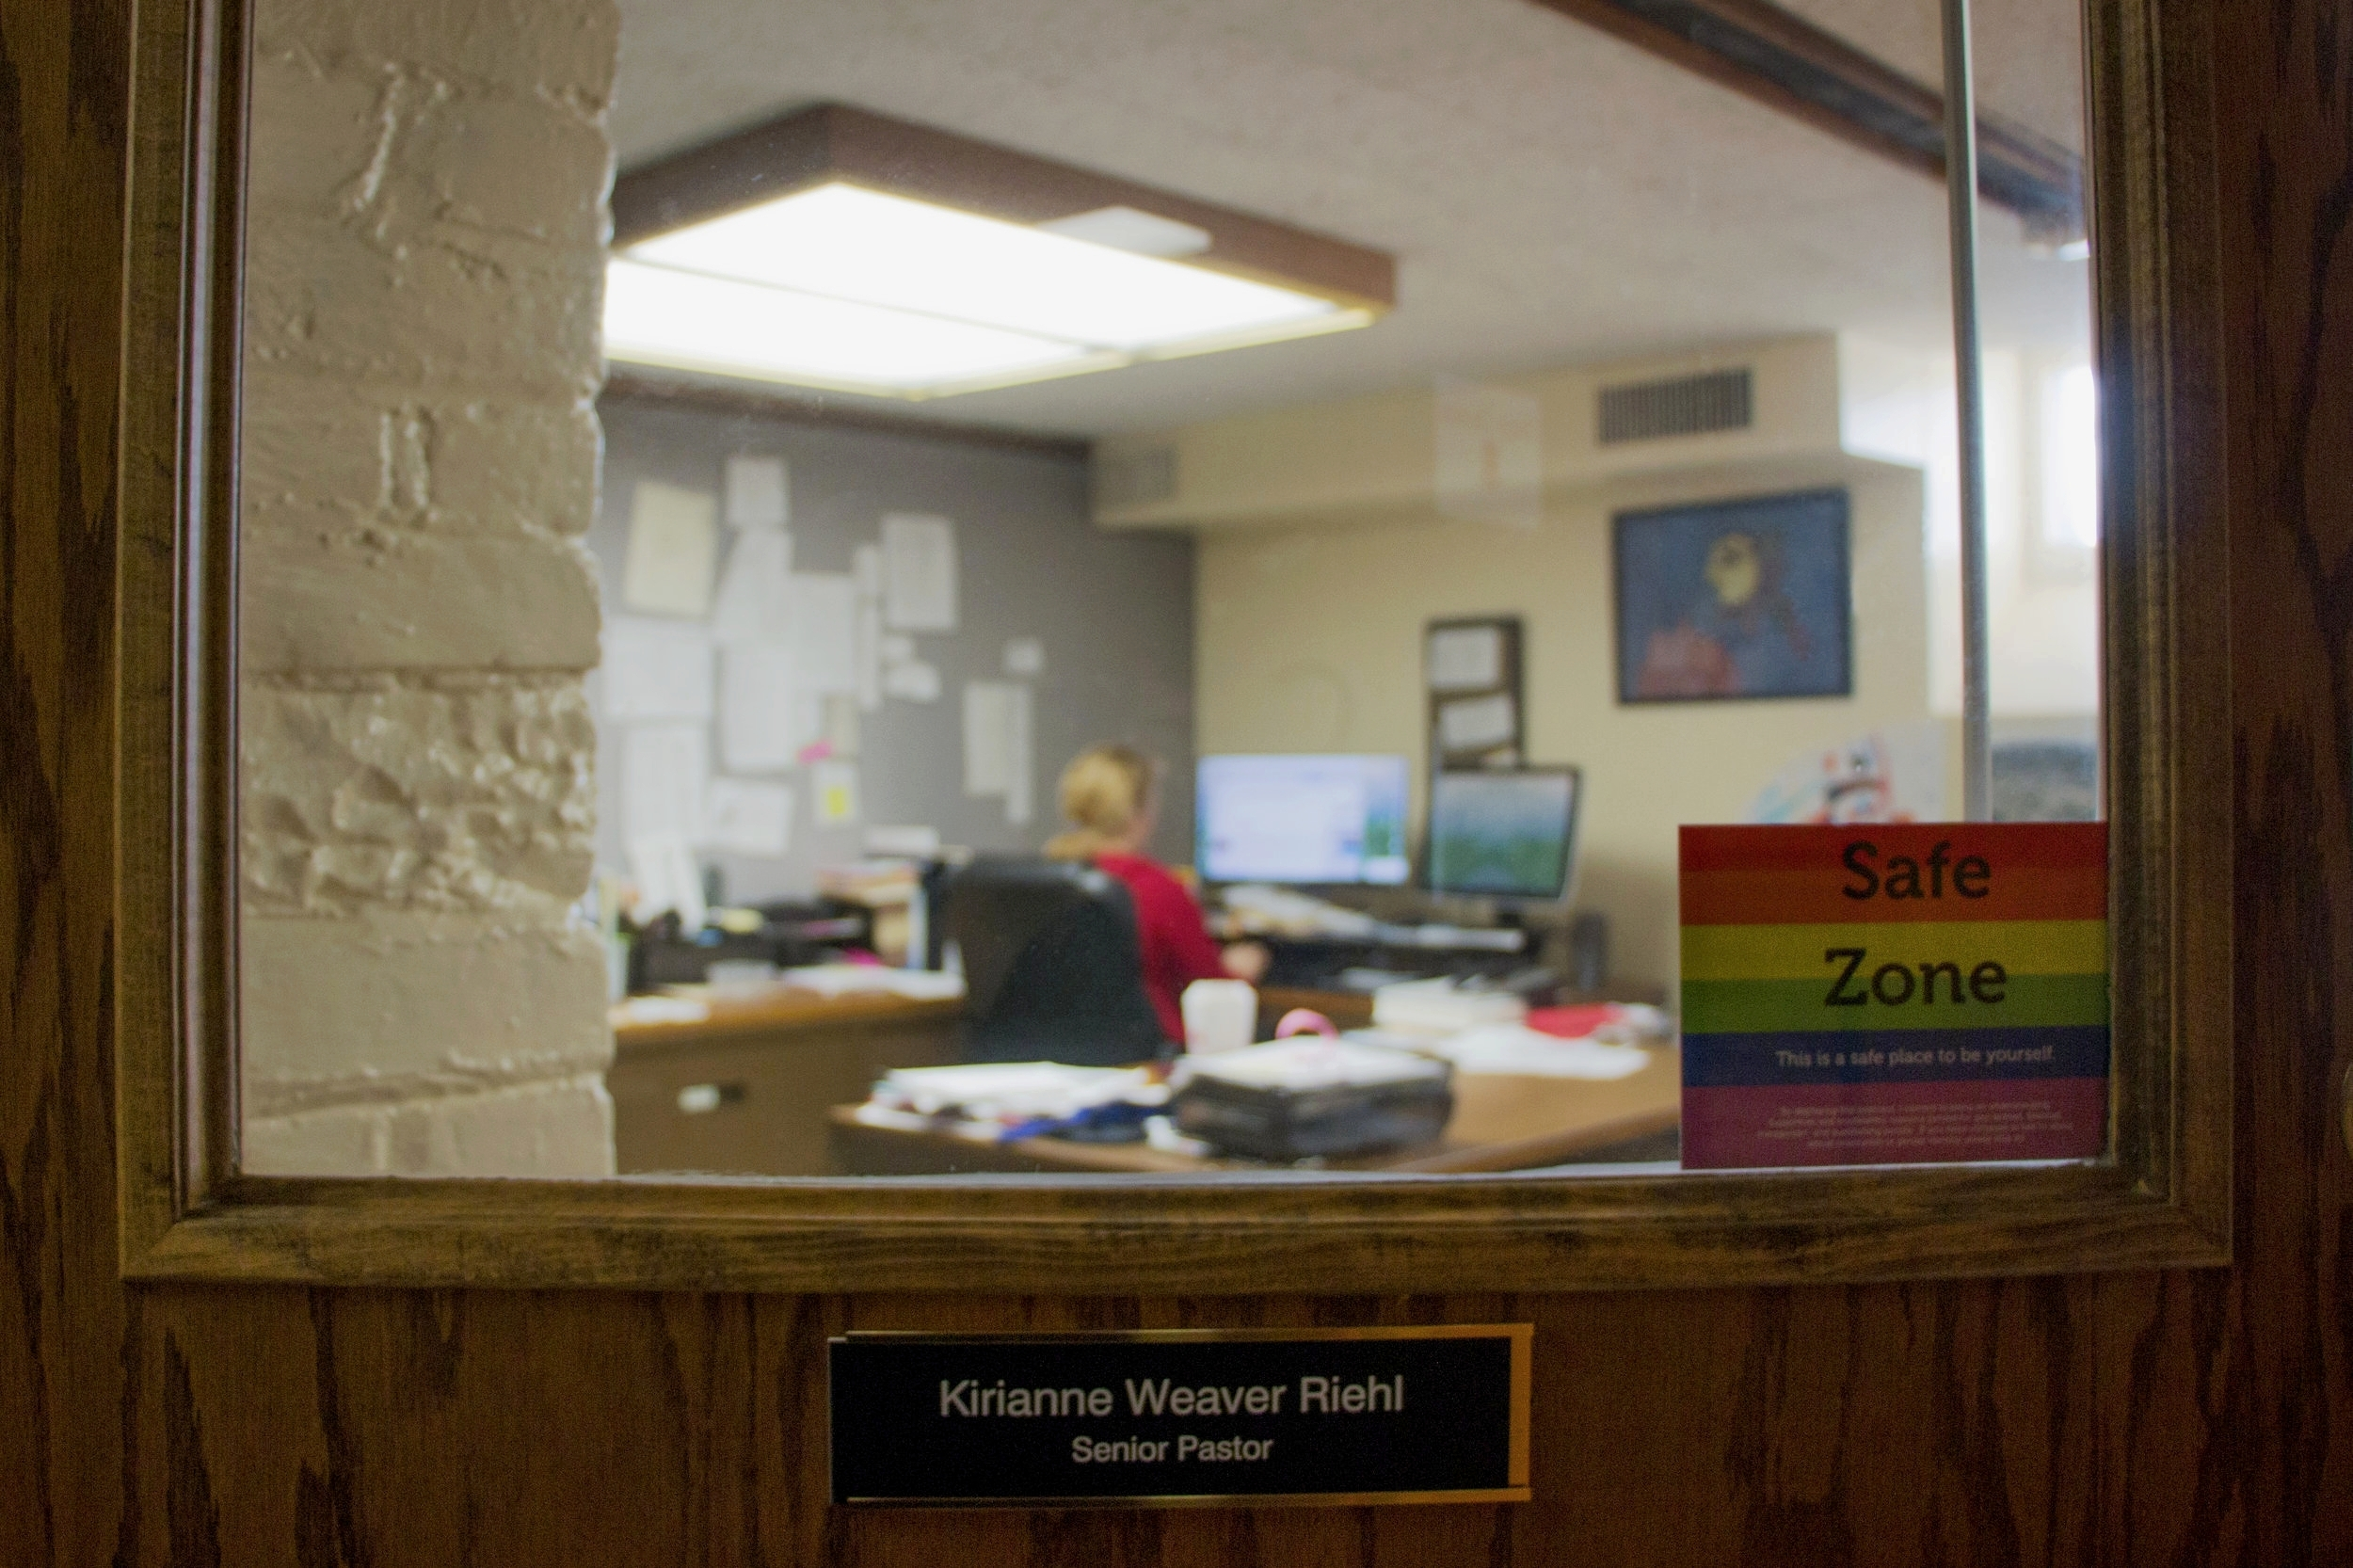 "A lot of Kirianne's time is spent in her church office responding to emails of parishioners who seek out her advice. She keeps a ""Safe Zone"" sign on her door to support LGBTQ rights. She wants her church parish toreflect her progressive values and encourages her members to welcome marginalized groups into the community."